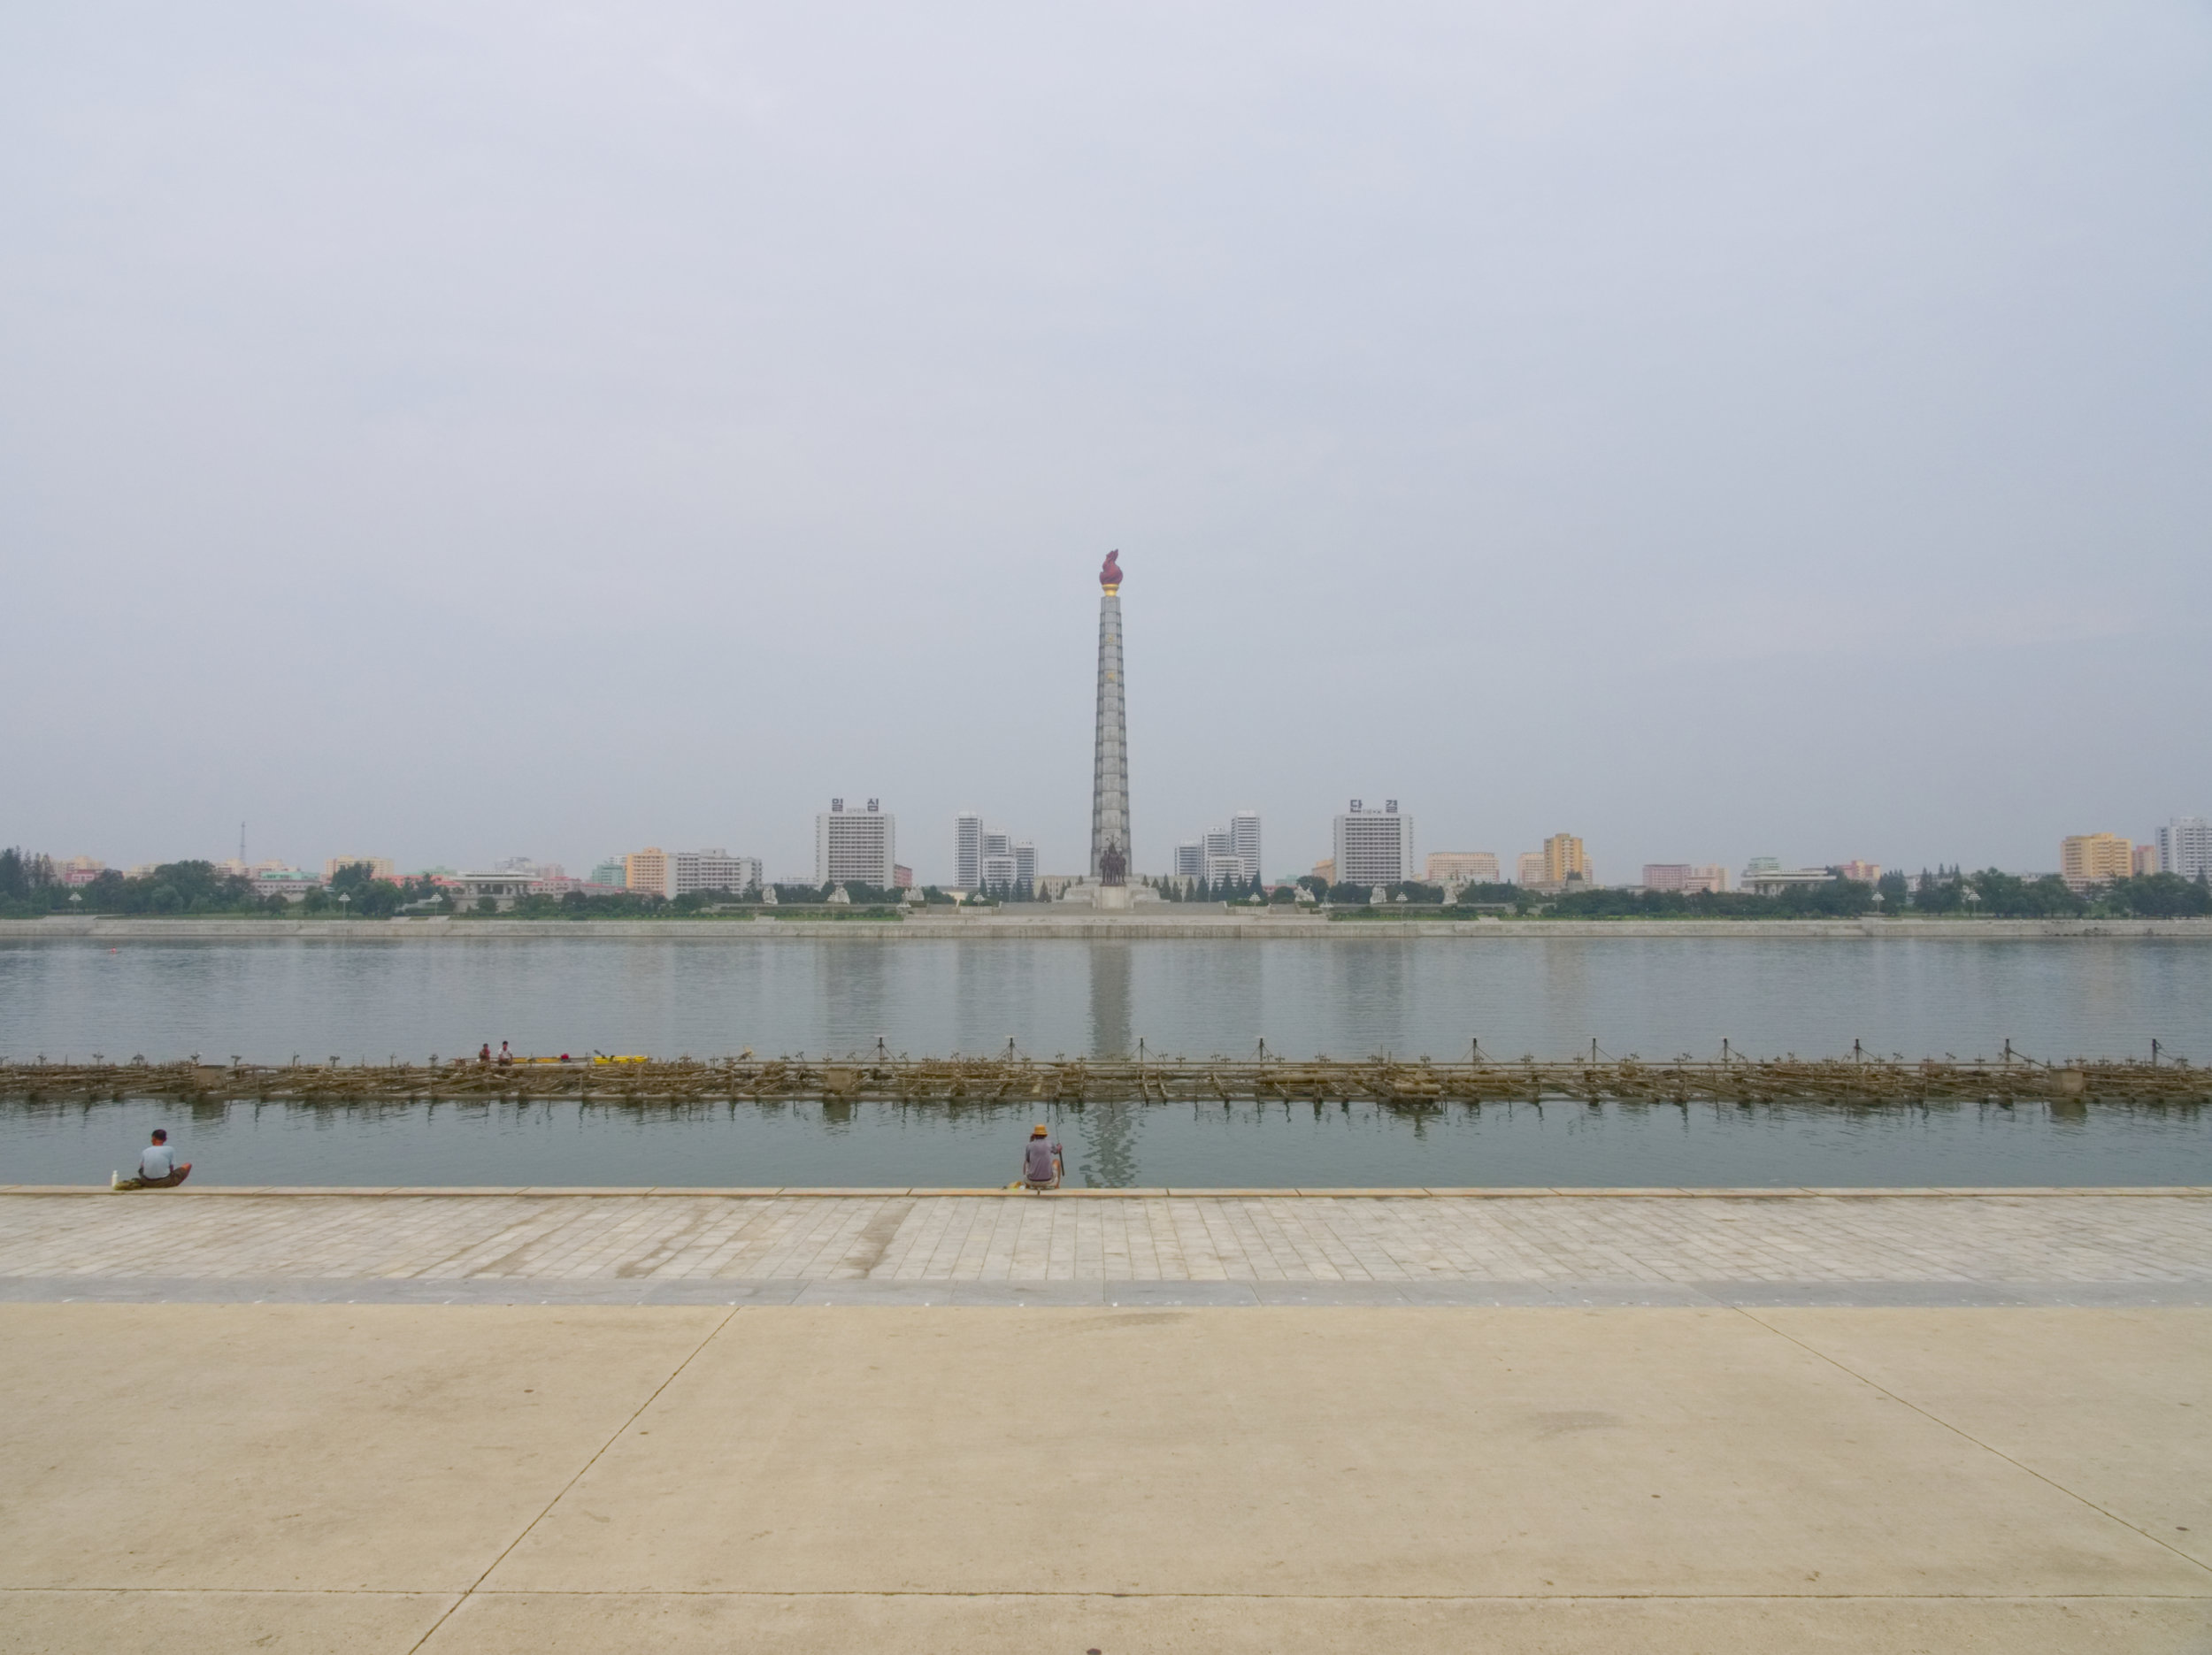 The Juche Tower across the Taedonggang River